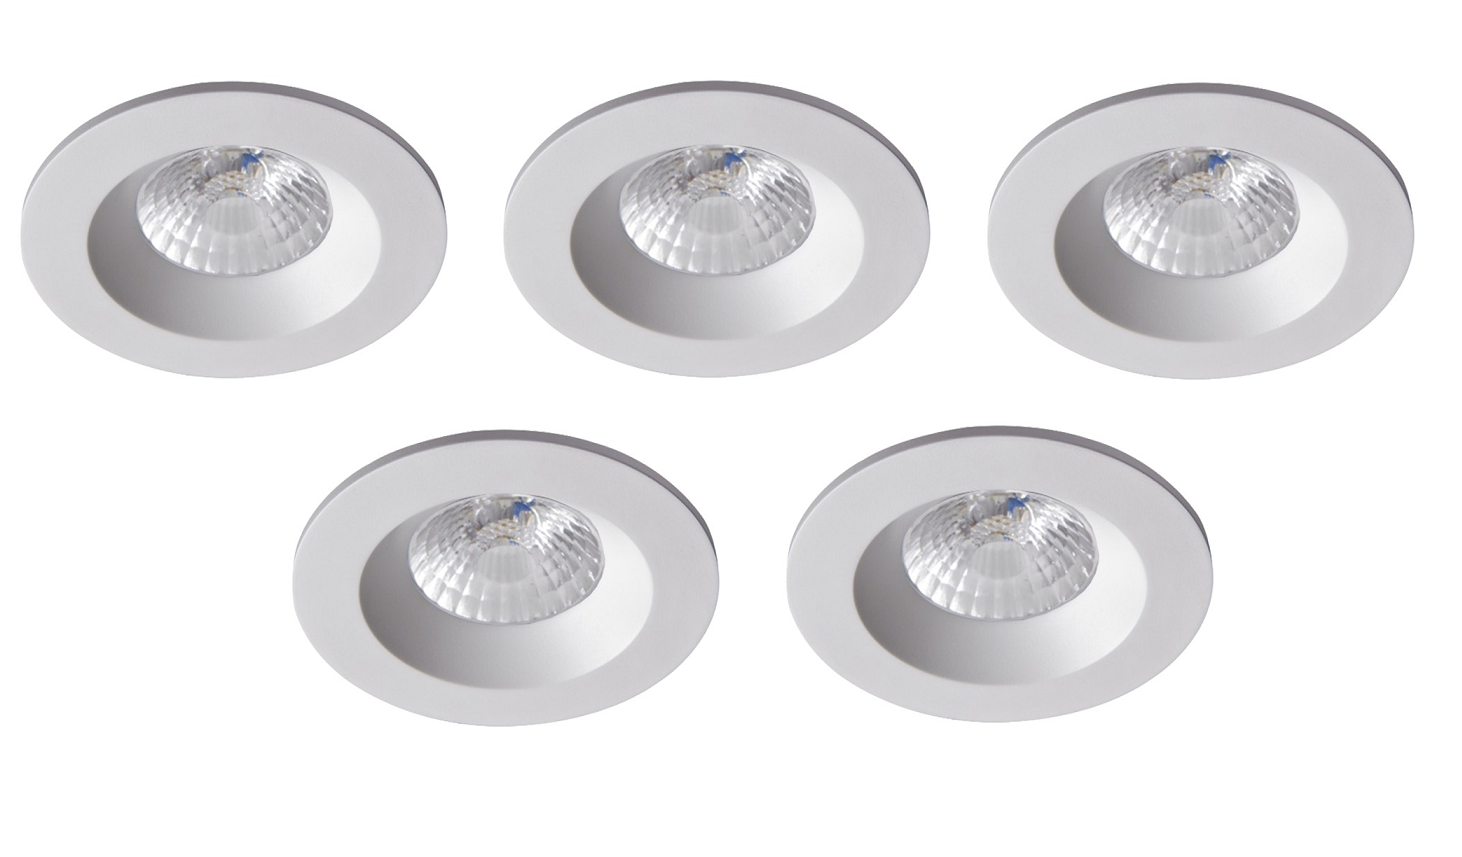 Robus | RC8WDLDWW-01 | LED inbouwspot | 5 LED spots | 575 Lumen | 5 x 8 Watt | Wit